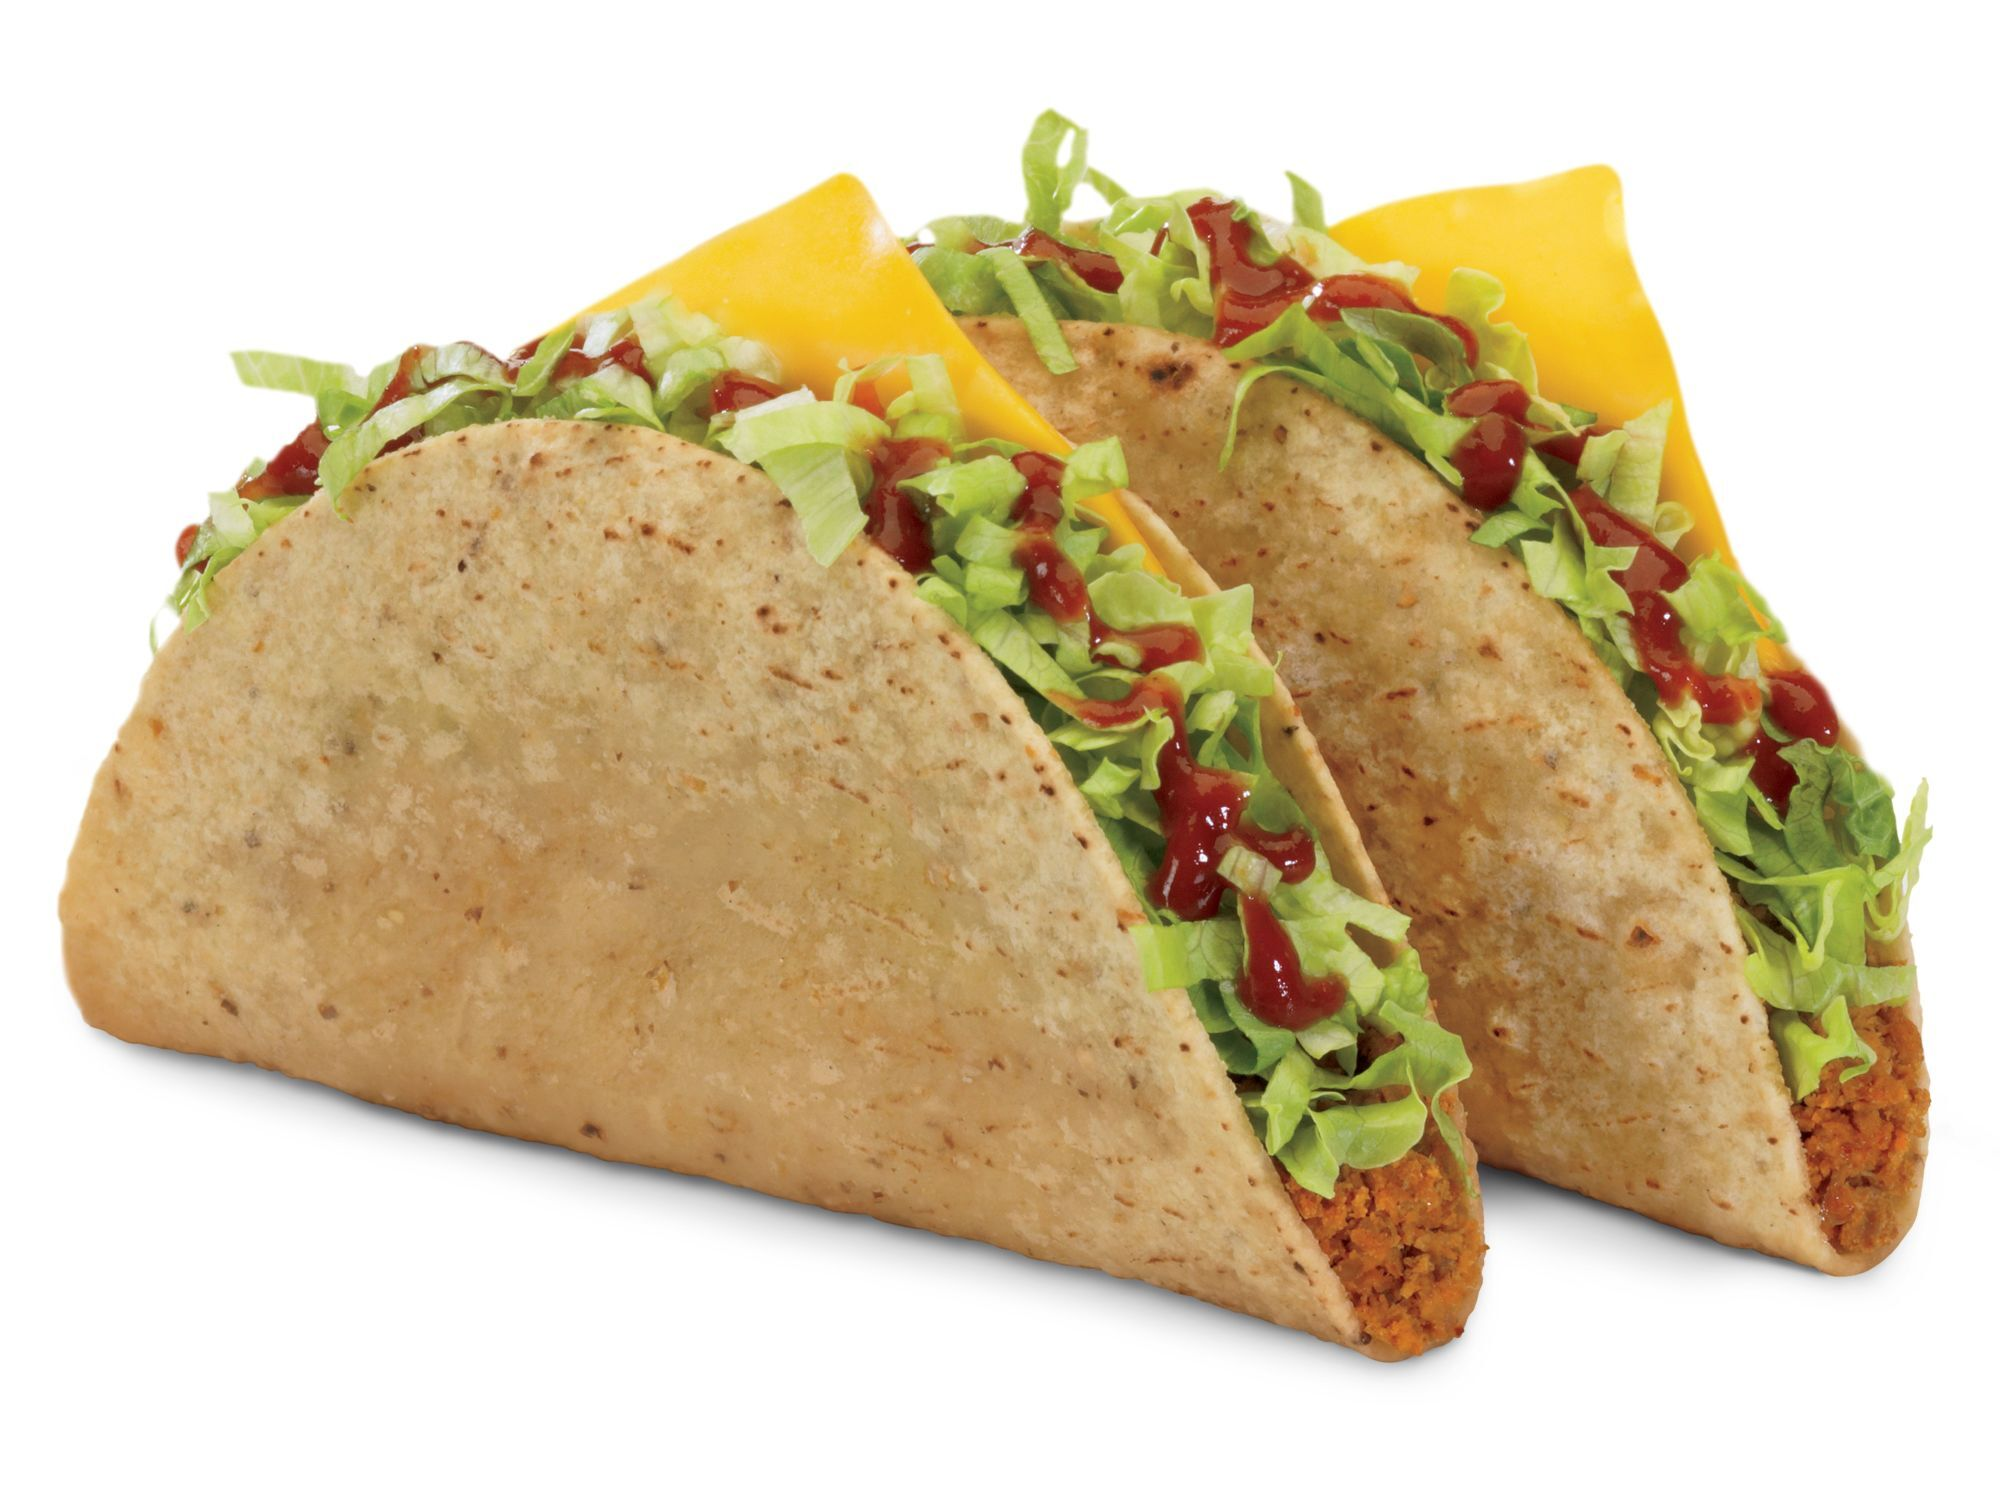 Do you know which fast food brand sells 25,000 tacos an hour?